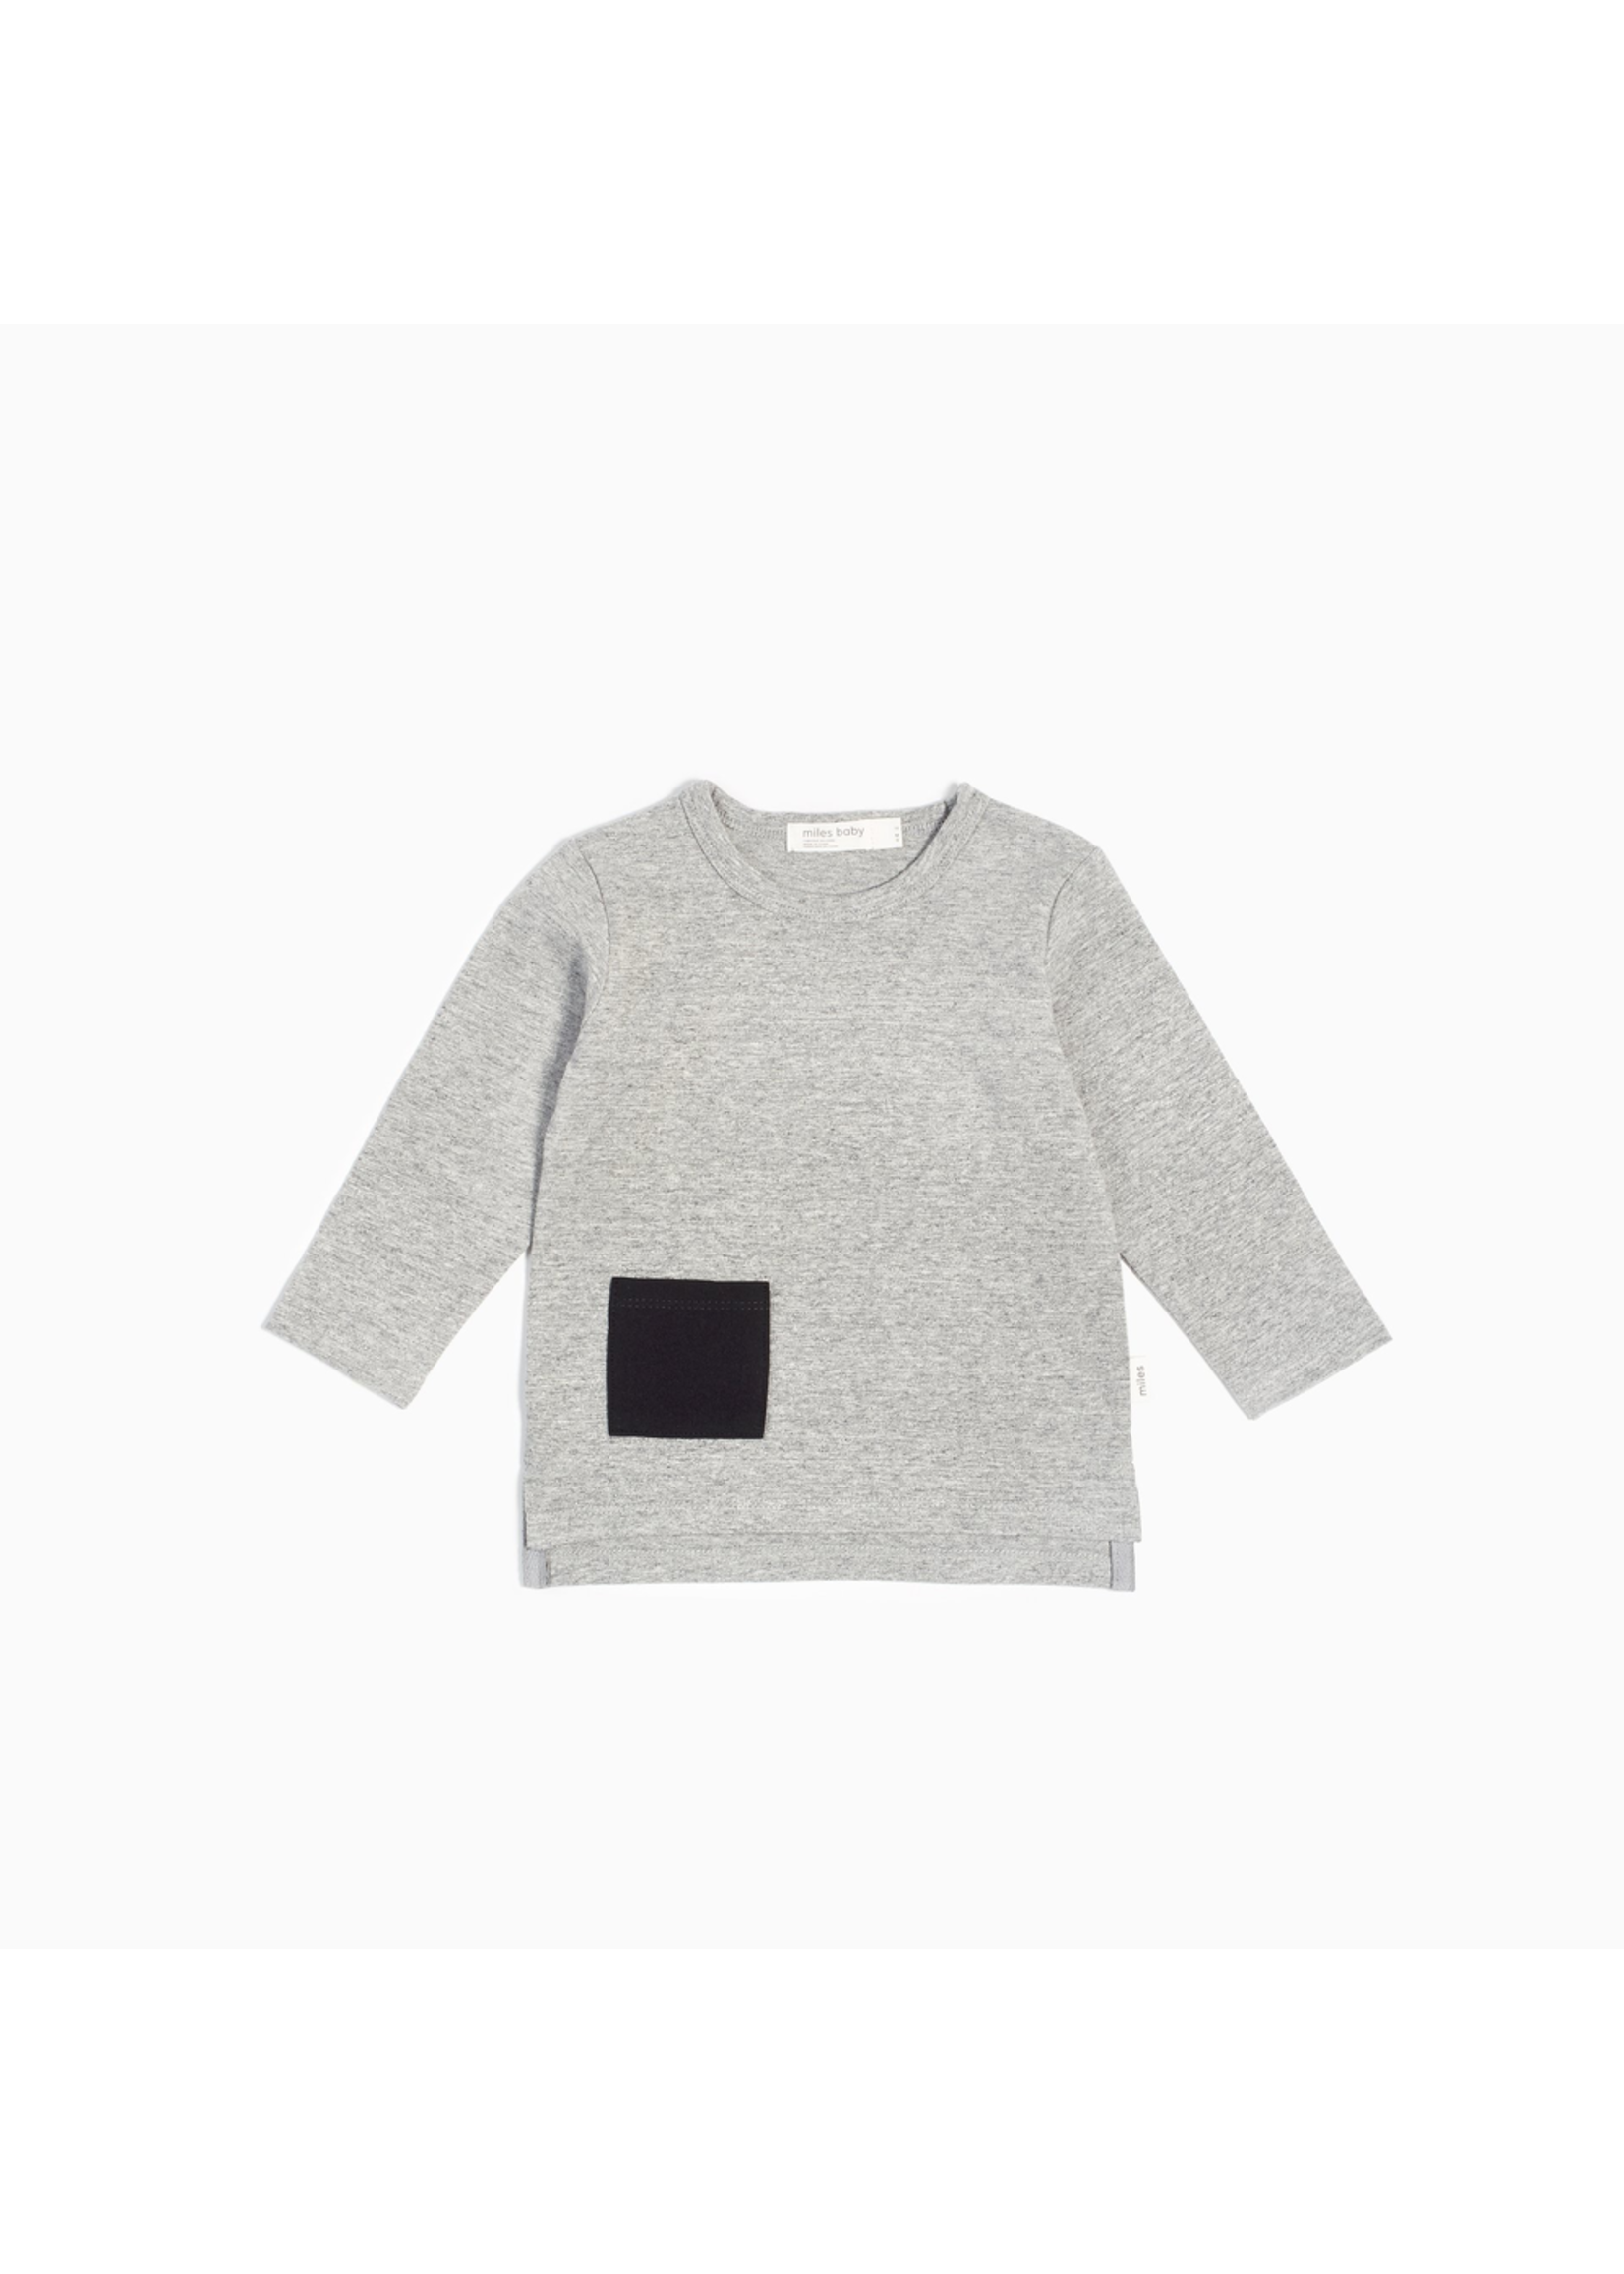 """Miles Baby Miles Baby, """"Miles Basic"""" Heather Grey Long Sleeve T-Shirt for Boy"""